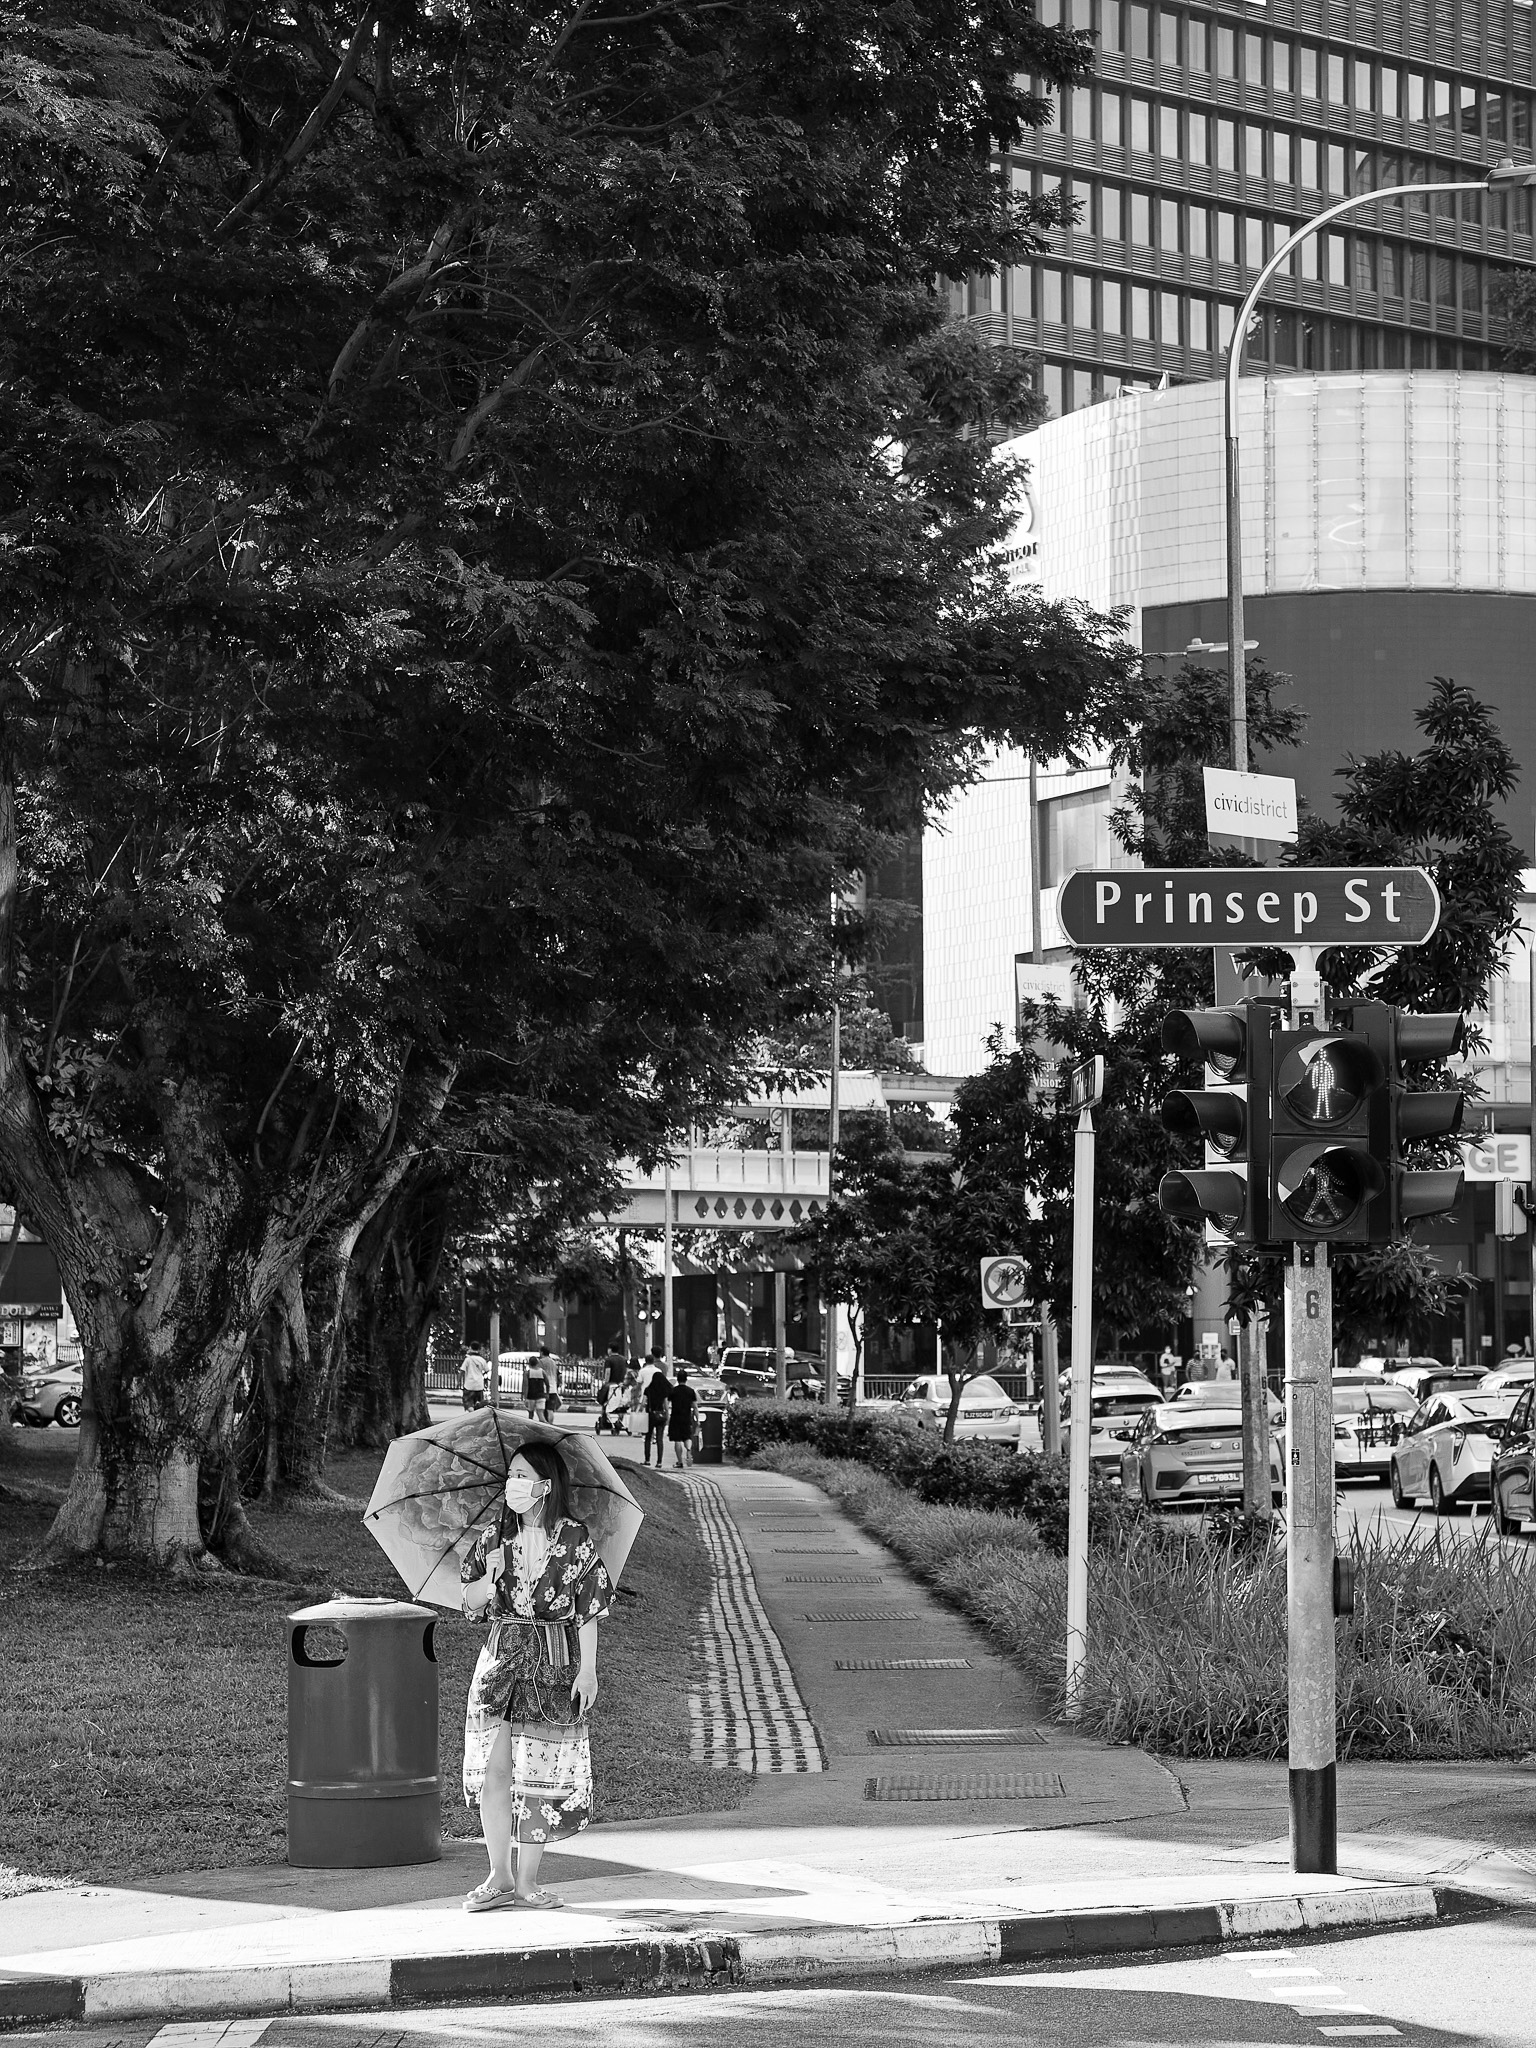 A woman with an umbrella waiting to cross the road, Prinsep Street, Bugis, Singapore